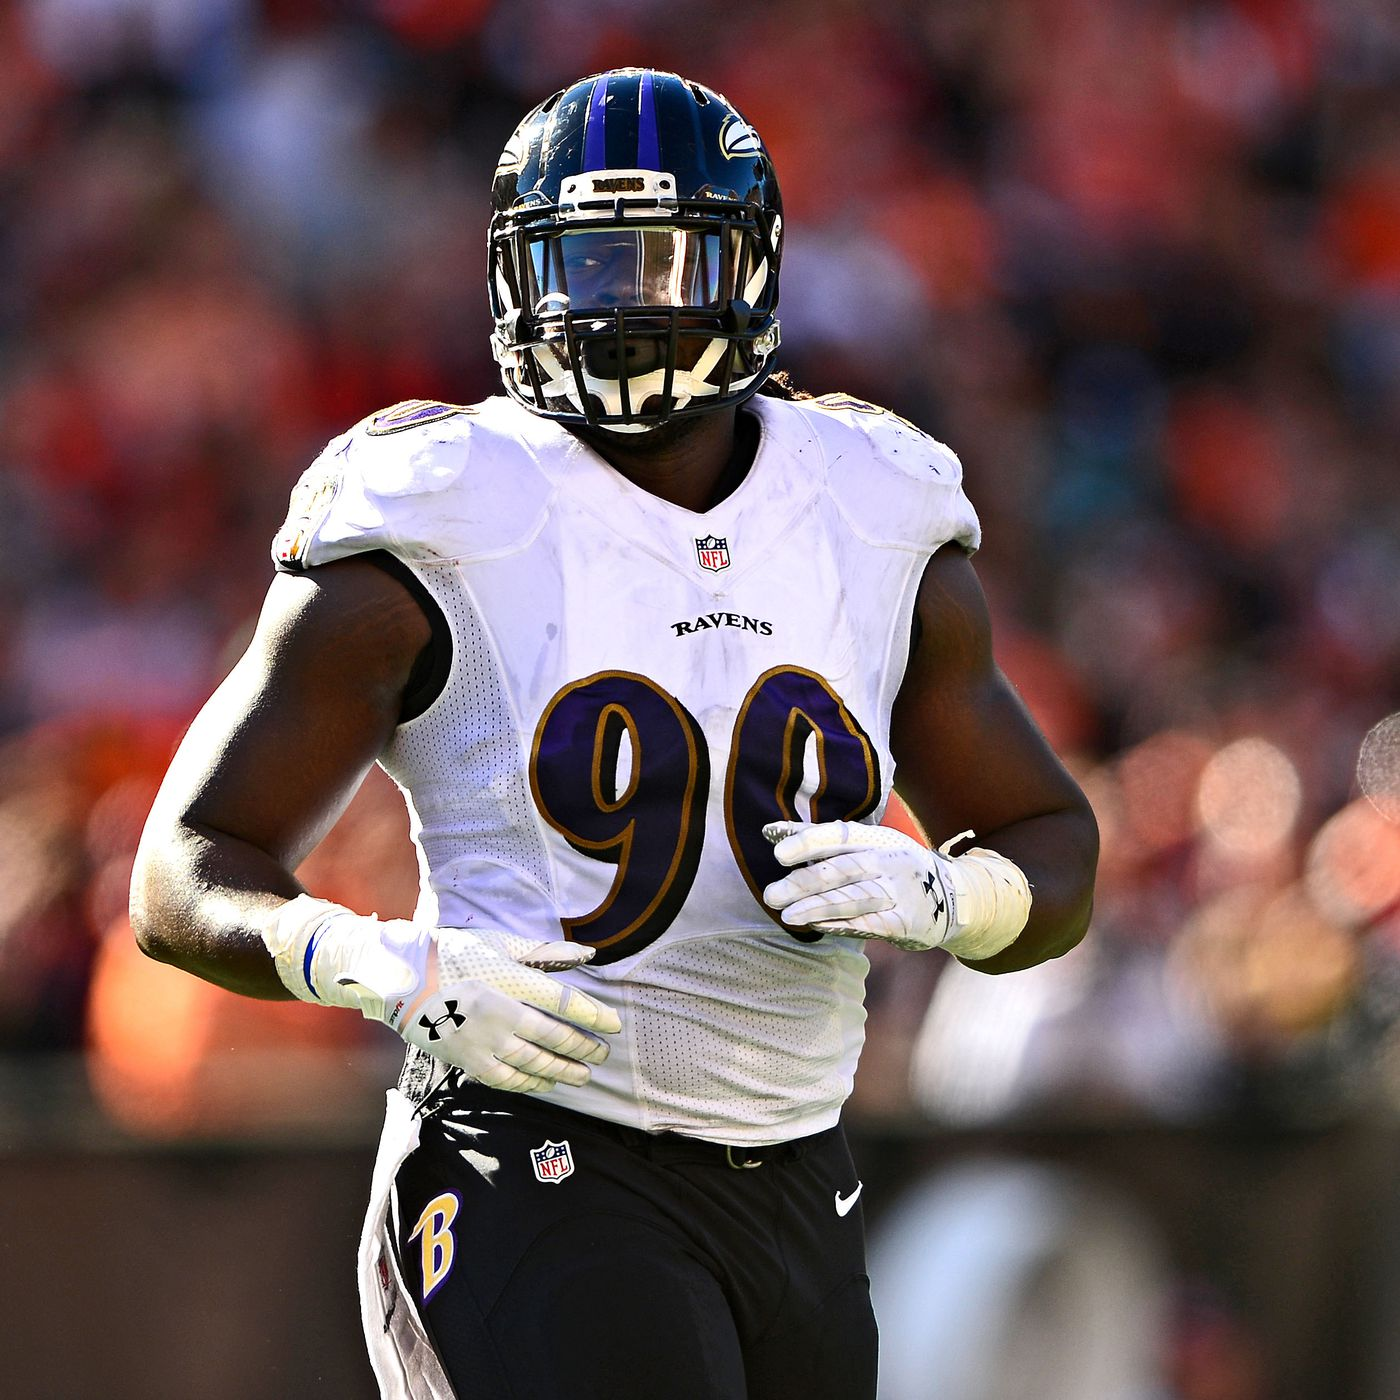 Pernell McPhee signs 5-year deal with Bears - SBNation.com